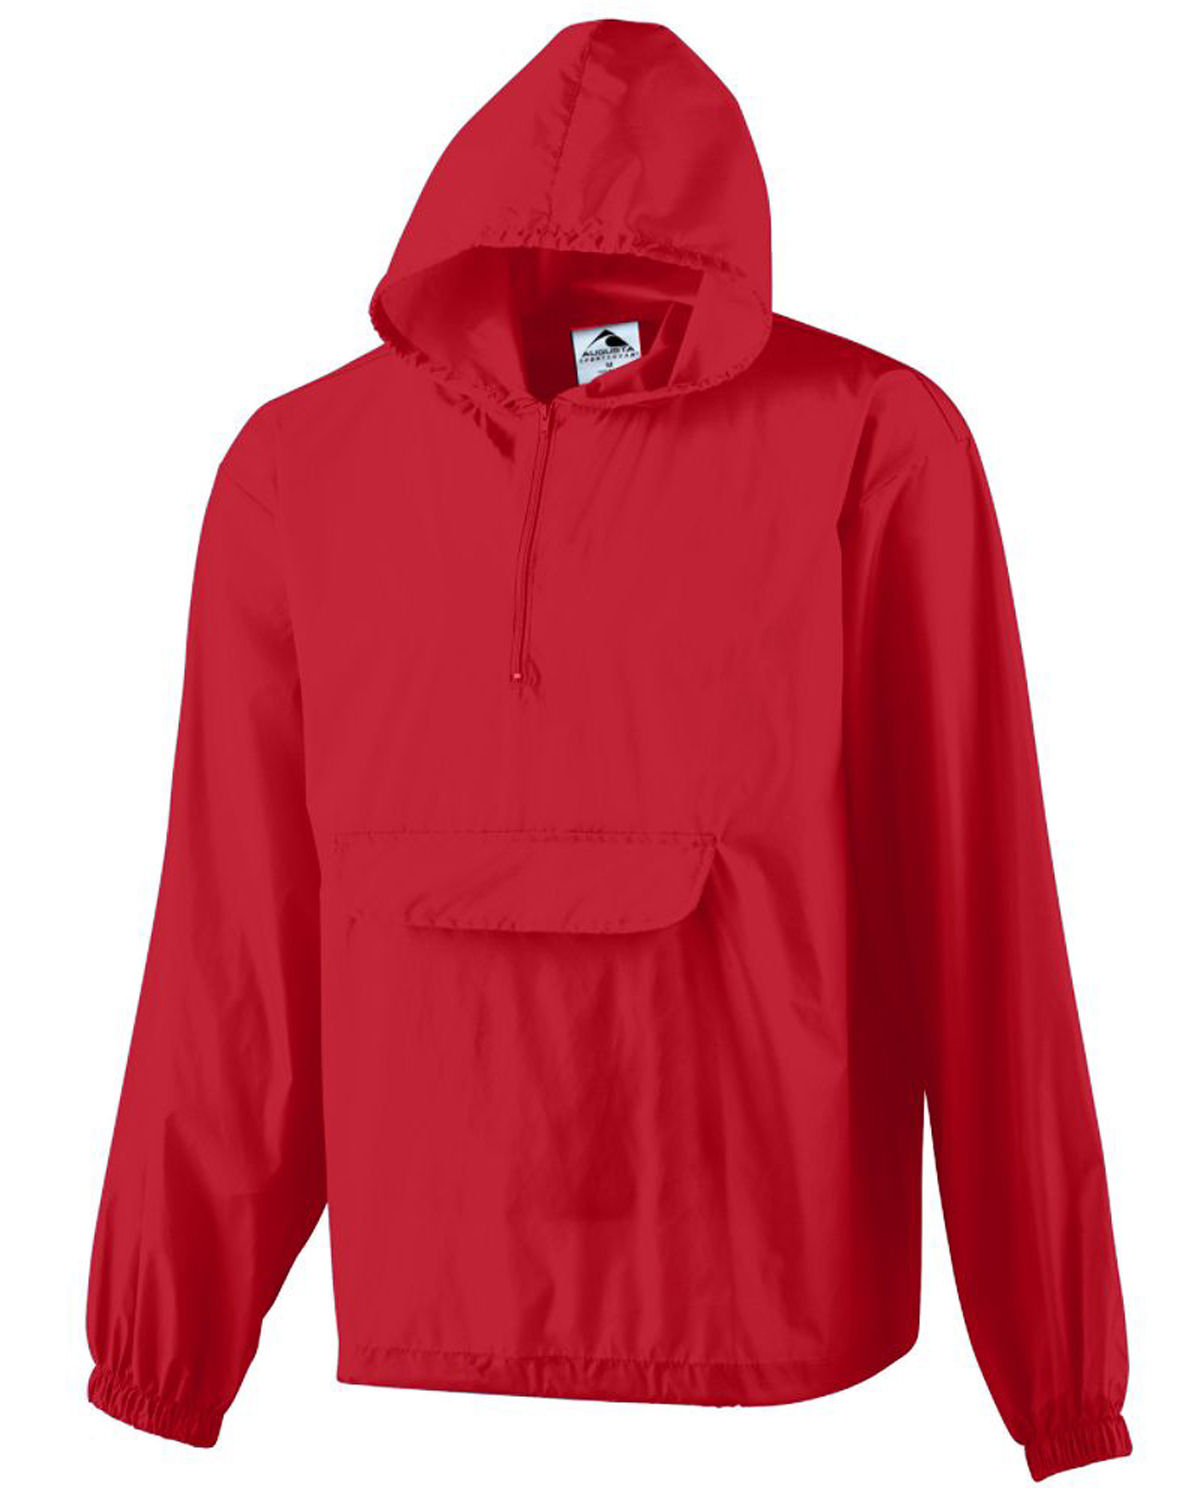 Augusta Sportswear Packable Half-Zip Pullover Jacket 3130 S-3XL ...